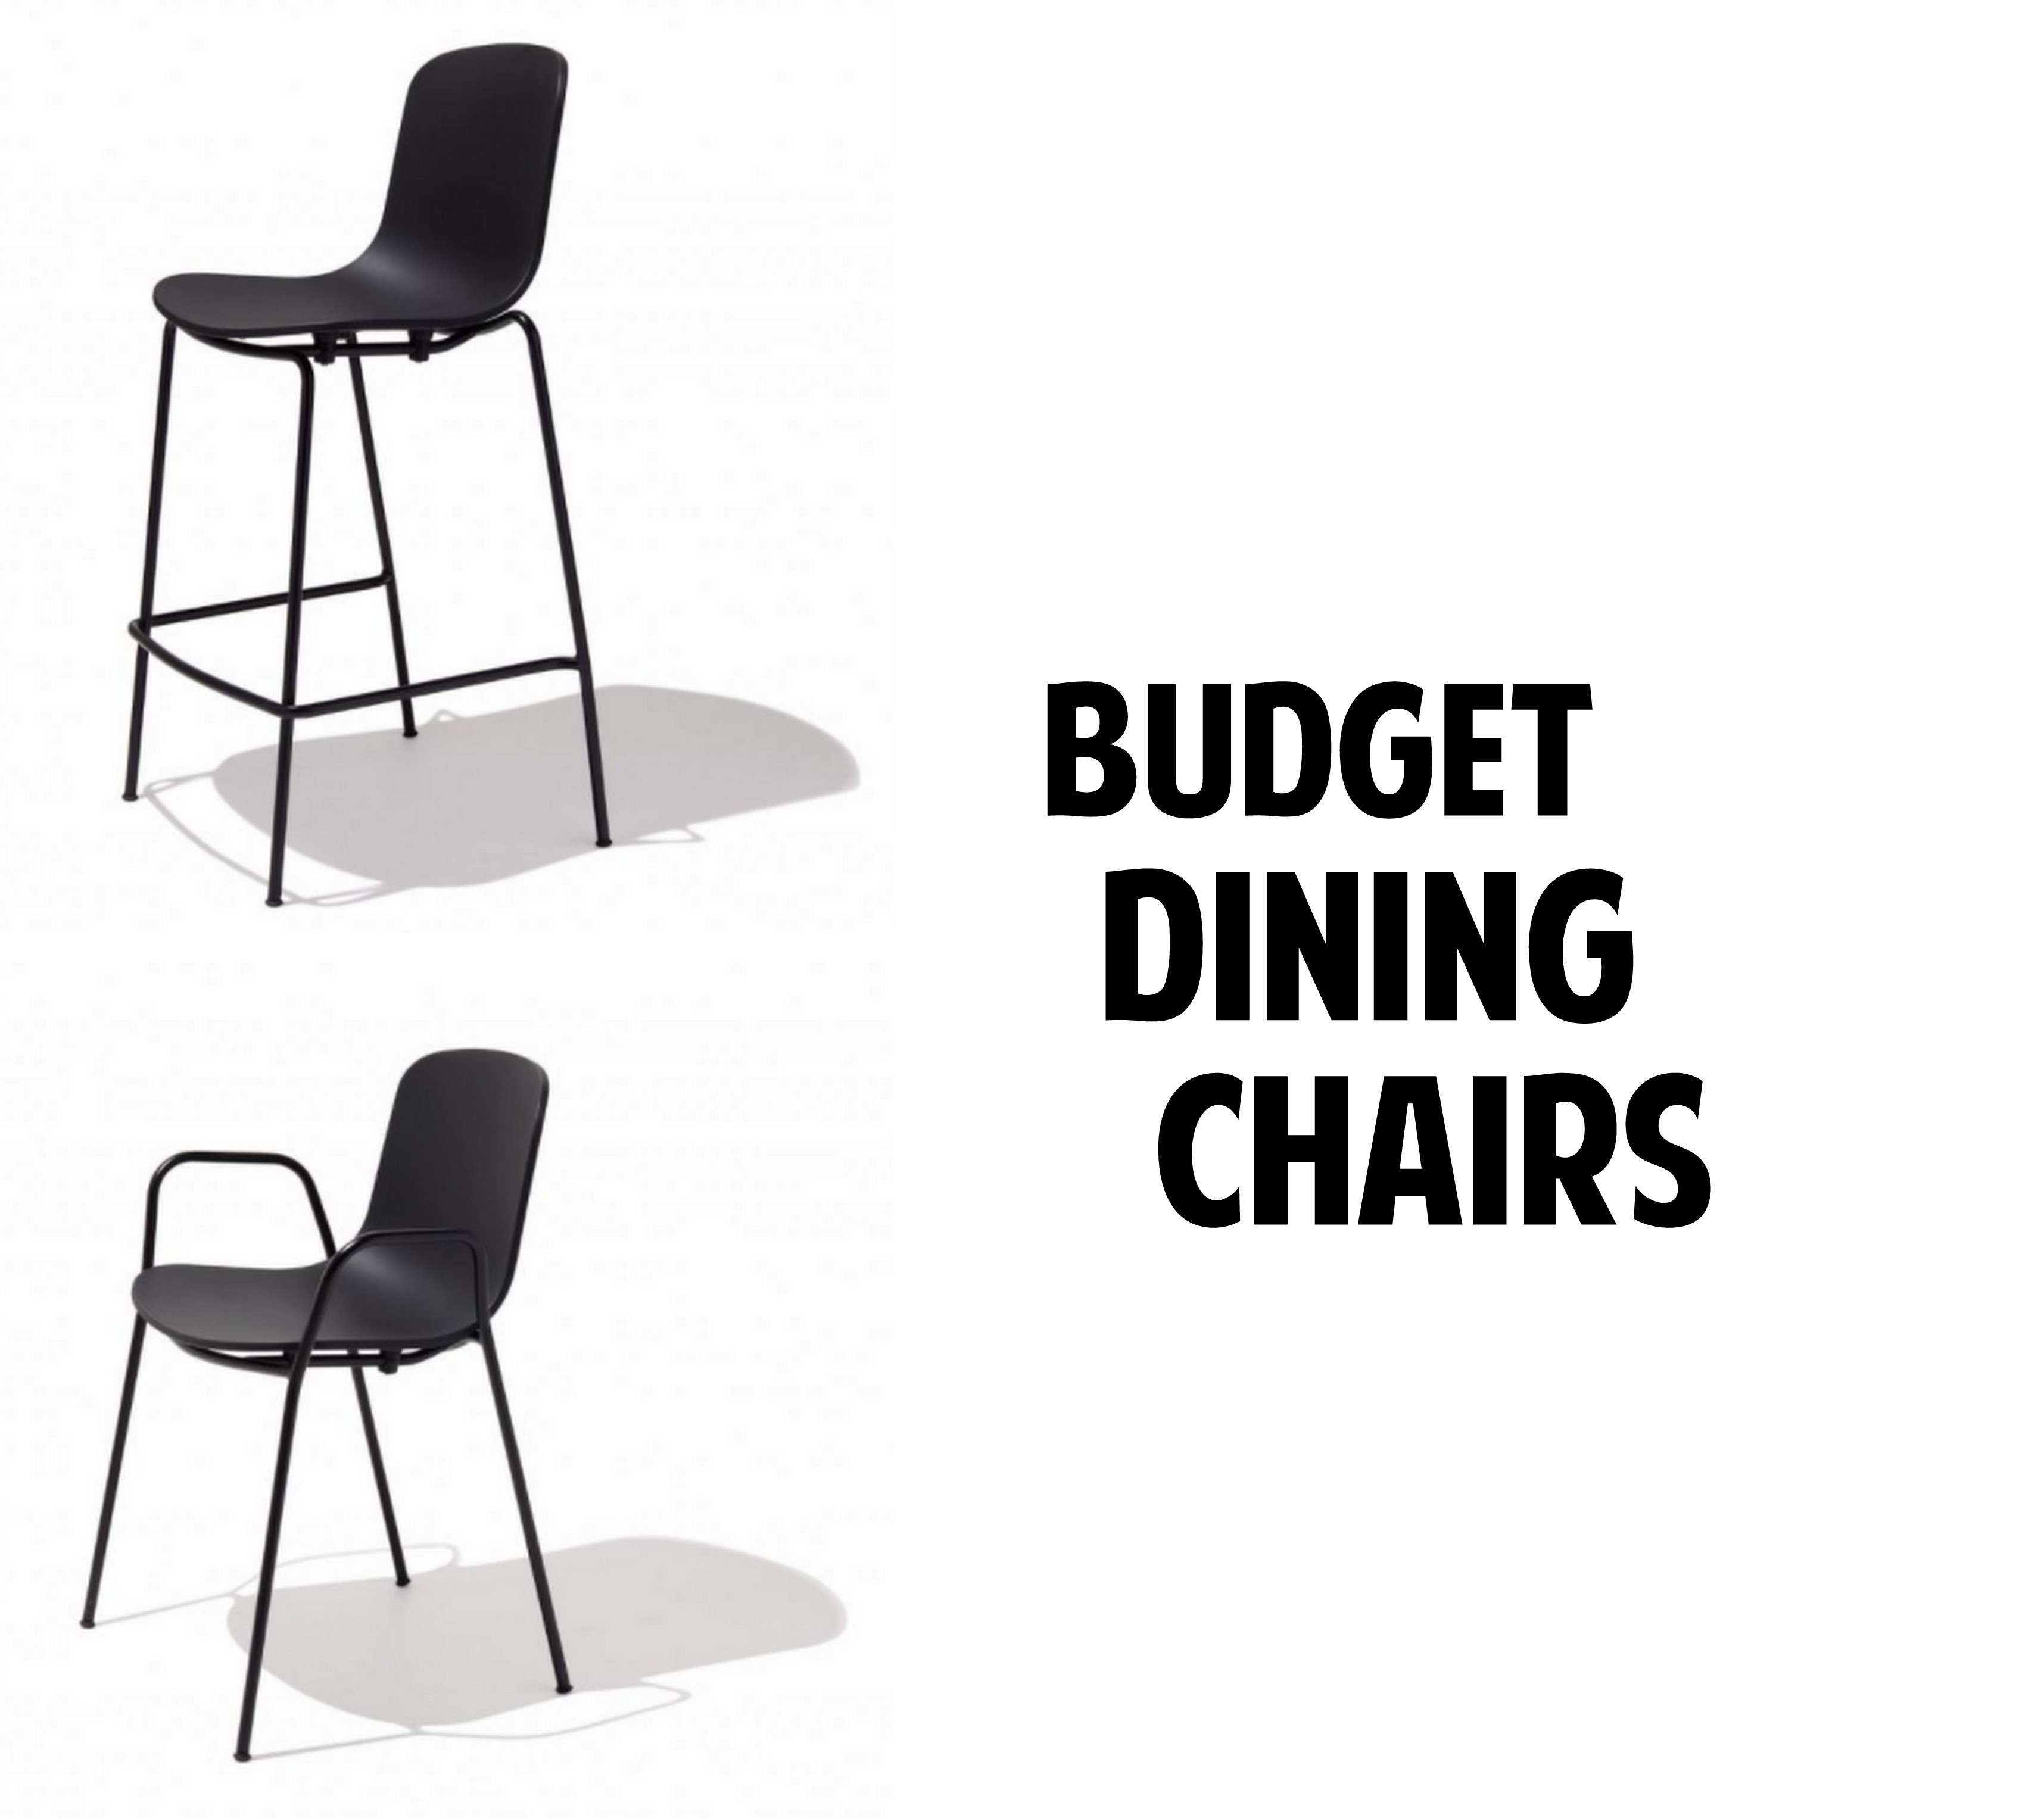 Modern Budget Dining Chairs